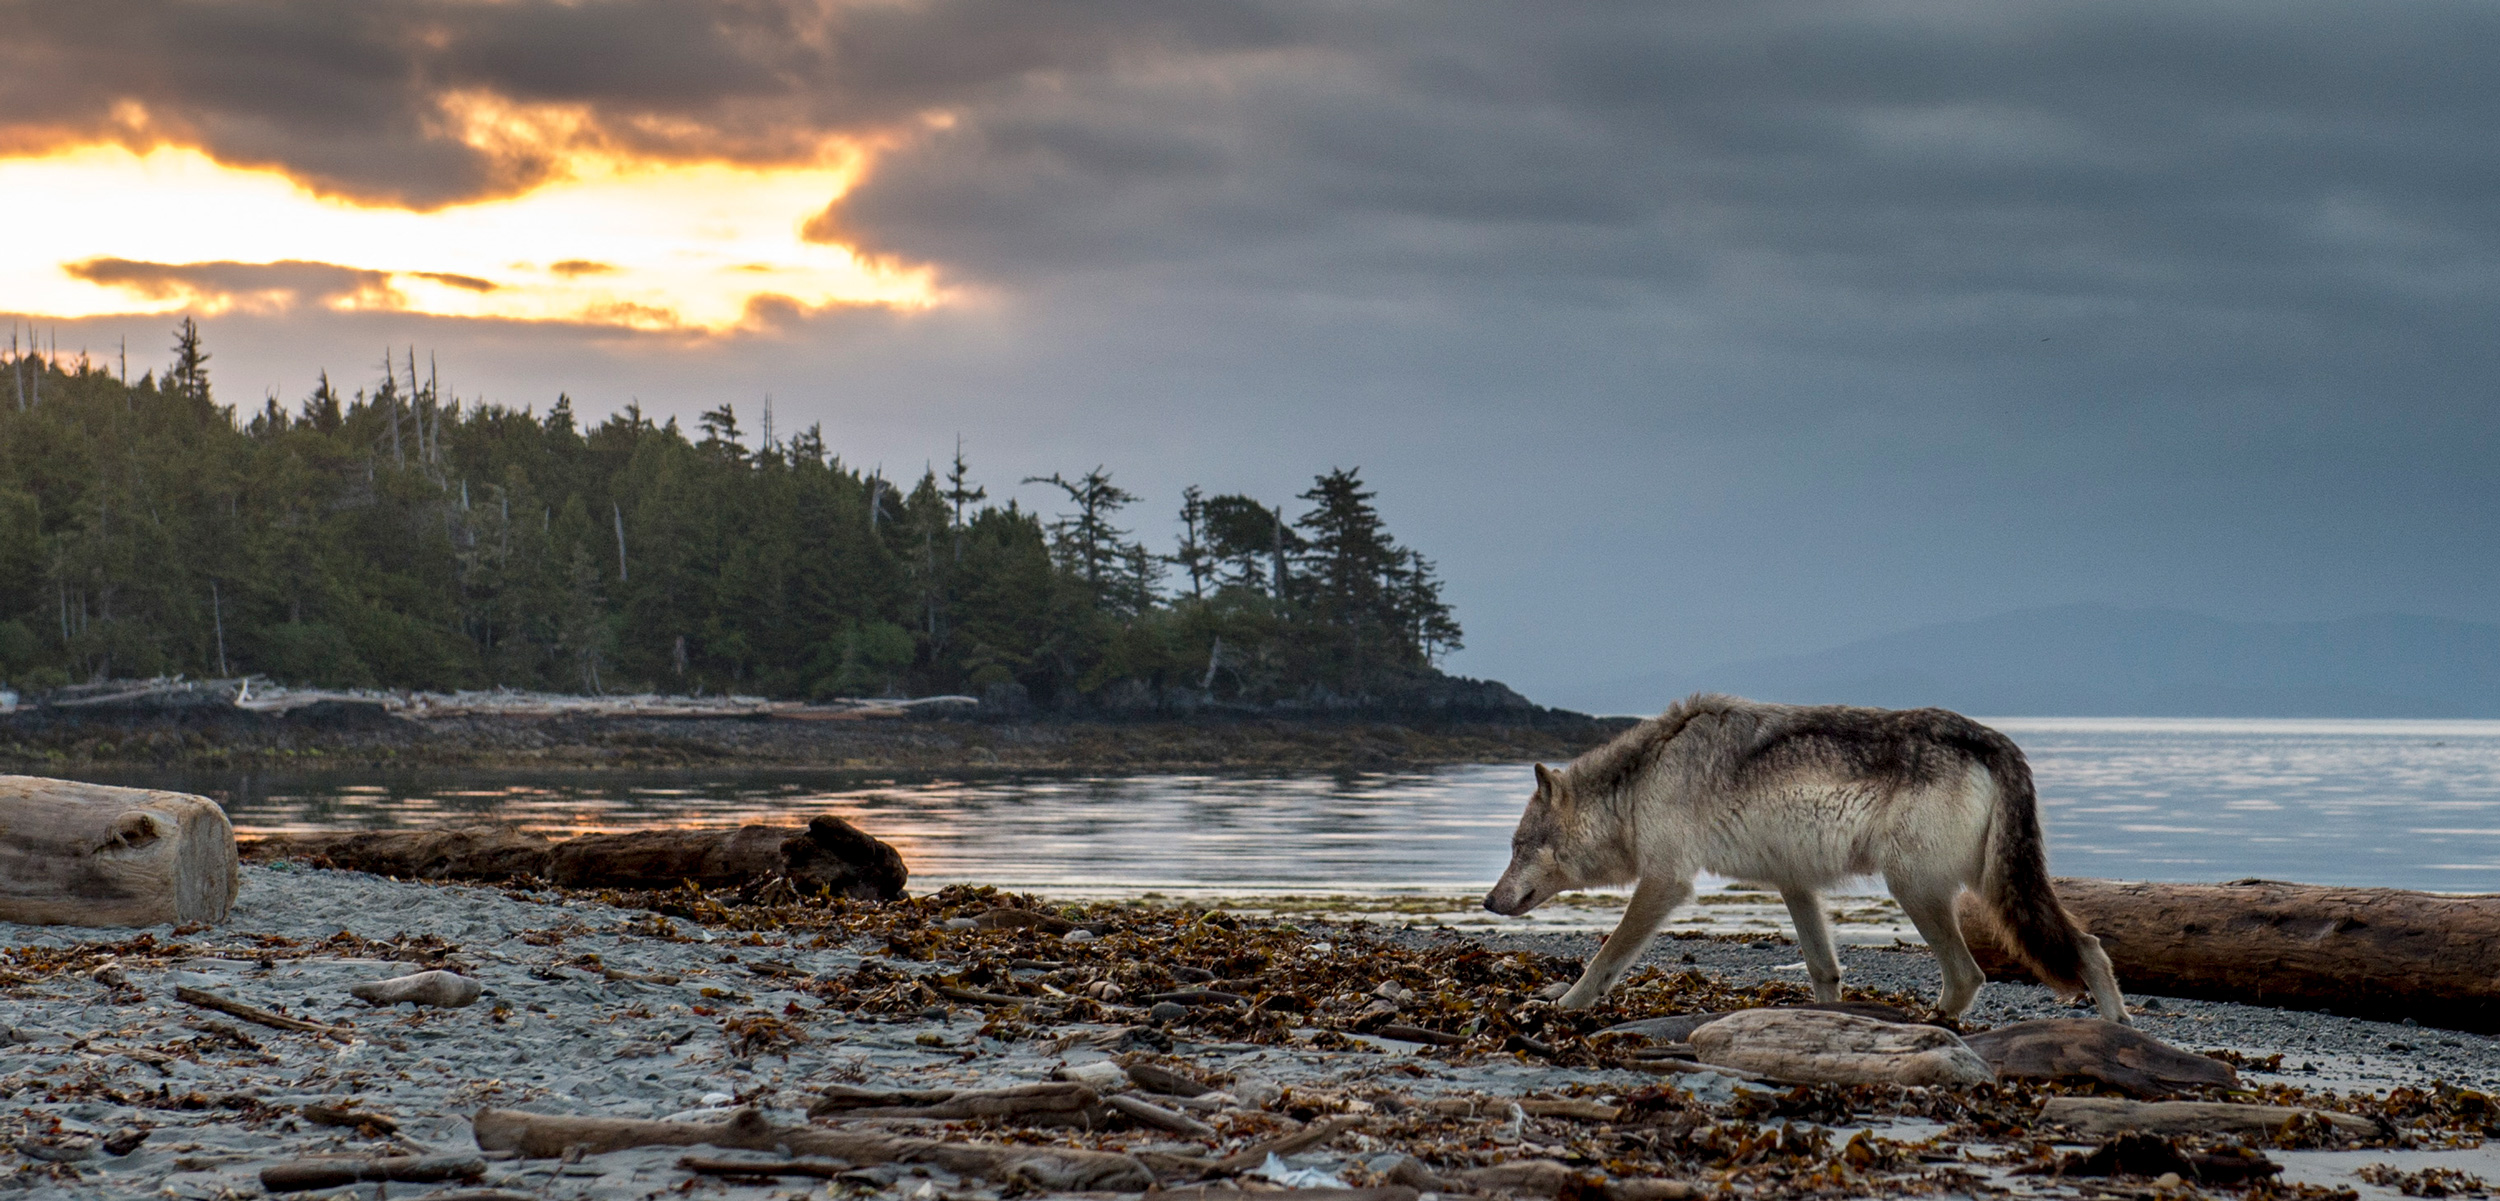 In the 20th century, humans exterminated the gray wolf population of British Columbia's Vancouver Island, the largest island on the west coast of North America. The animals repopulated the island by the end of the century, and now live side by side with people. Photo by April Bencze